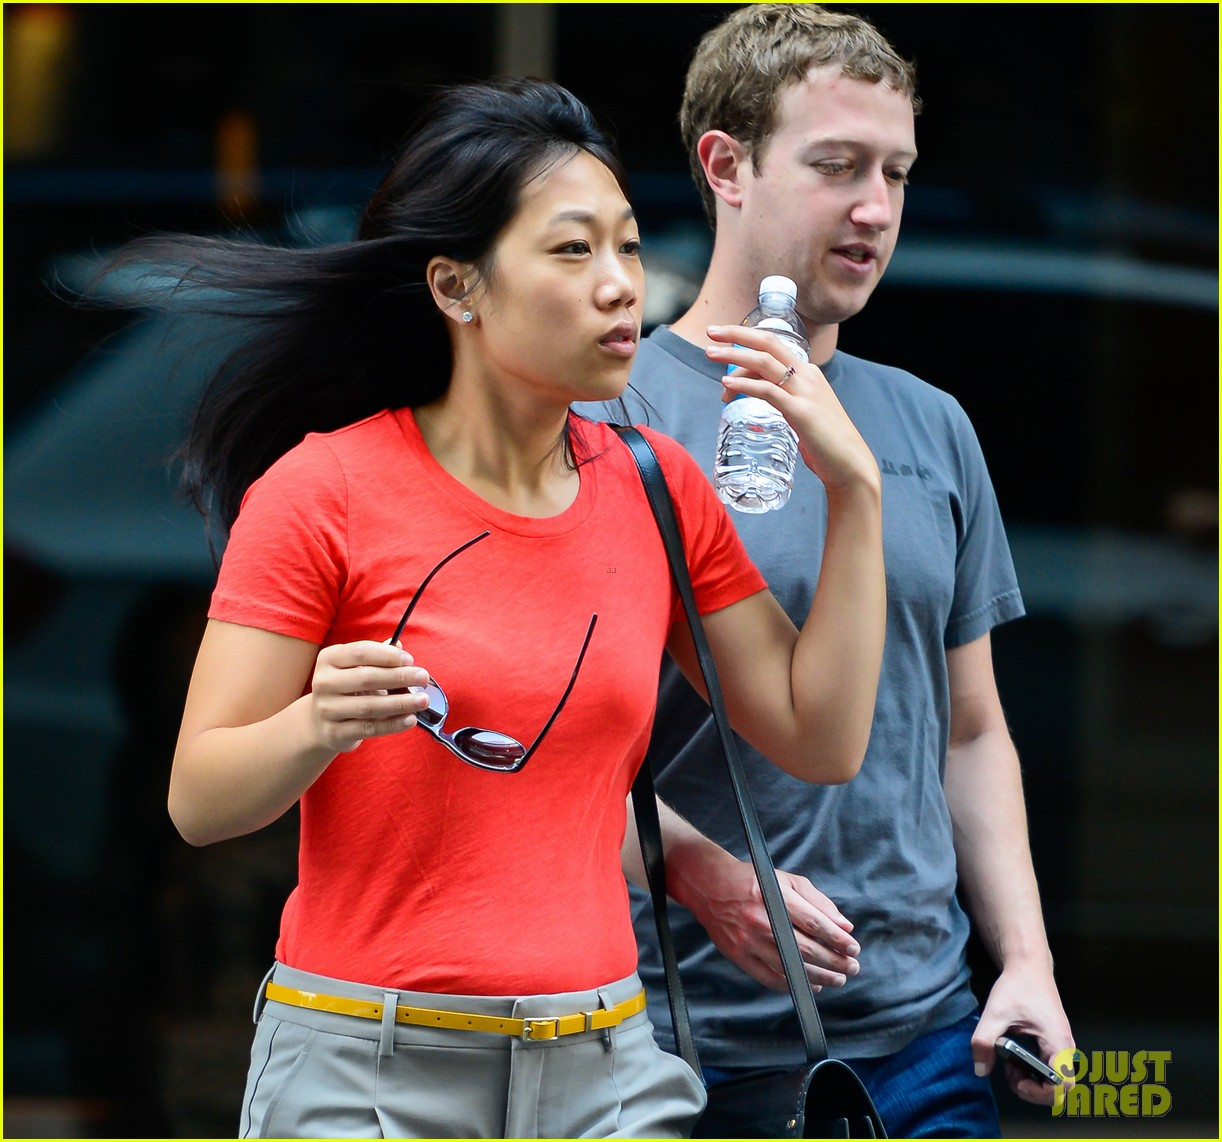 Mark Zuckerberg and Priscilla Chan sighting in the streets of Manhattan